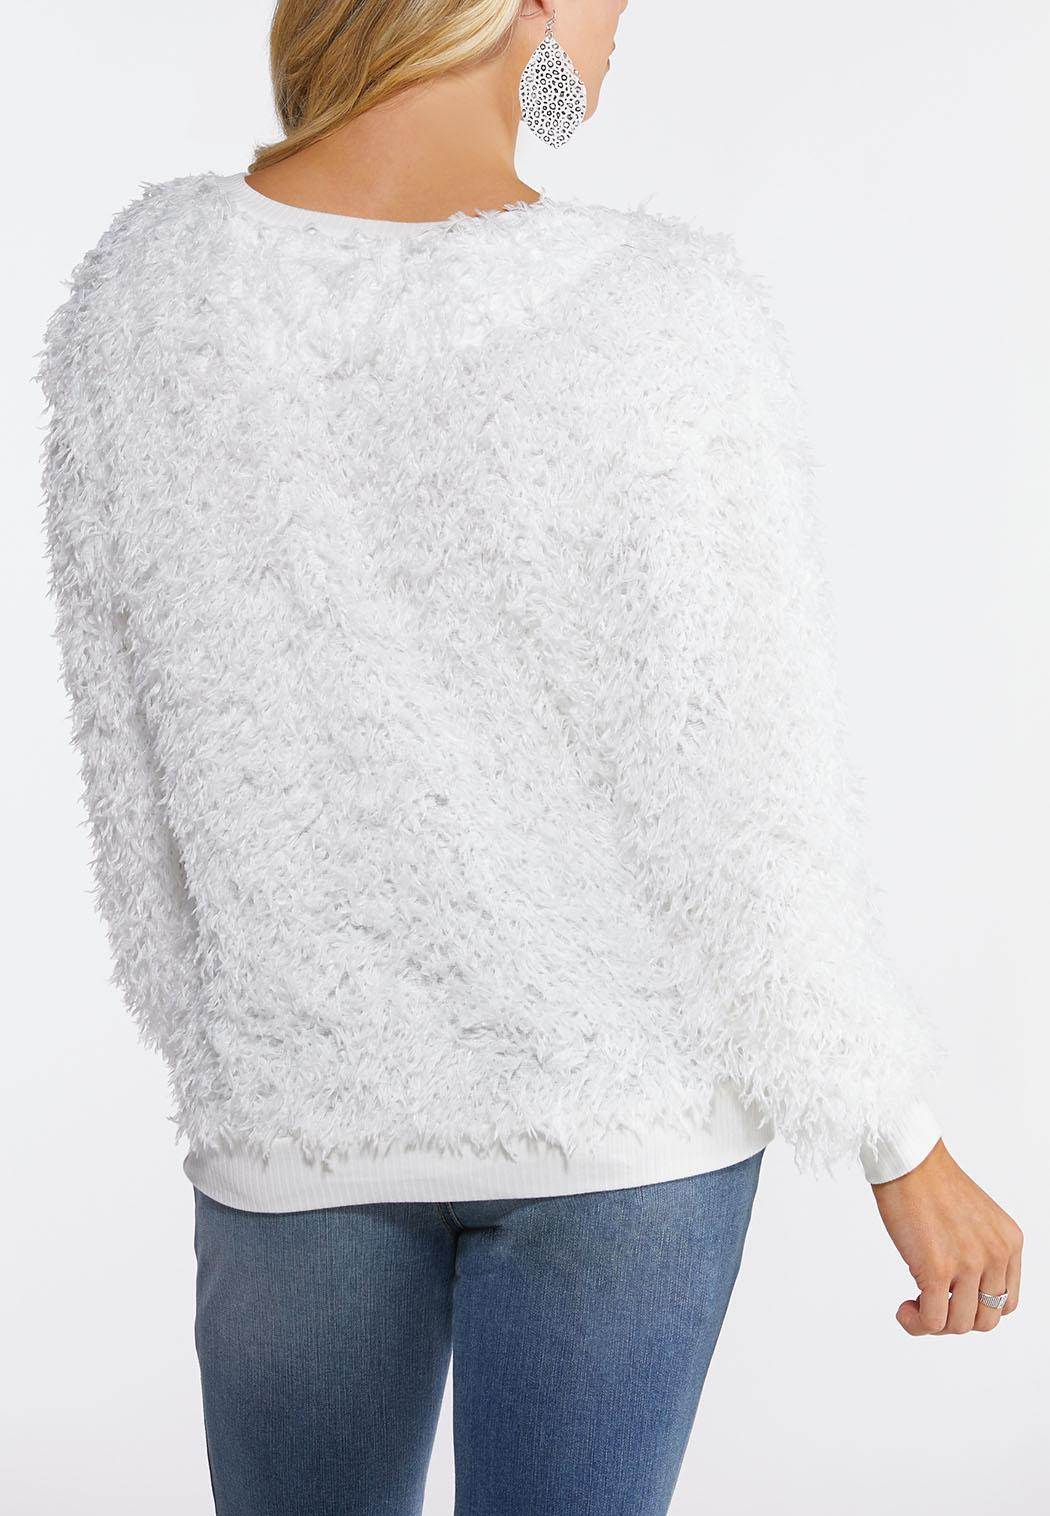 Plus Size Fluffy Ivory Scoop Neck Top (Item #44109475)